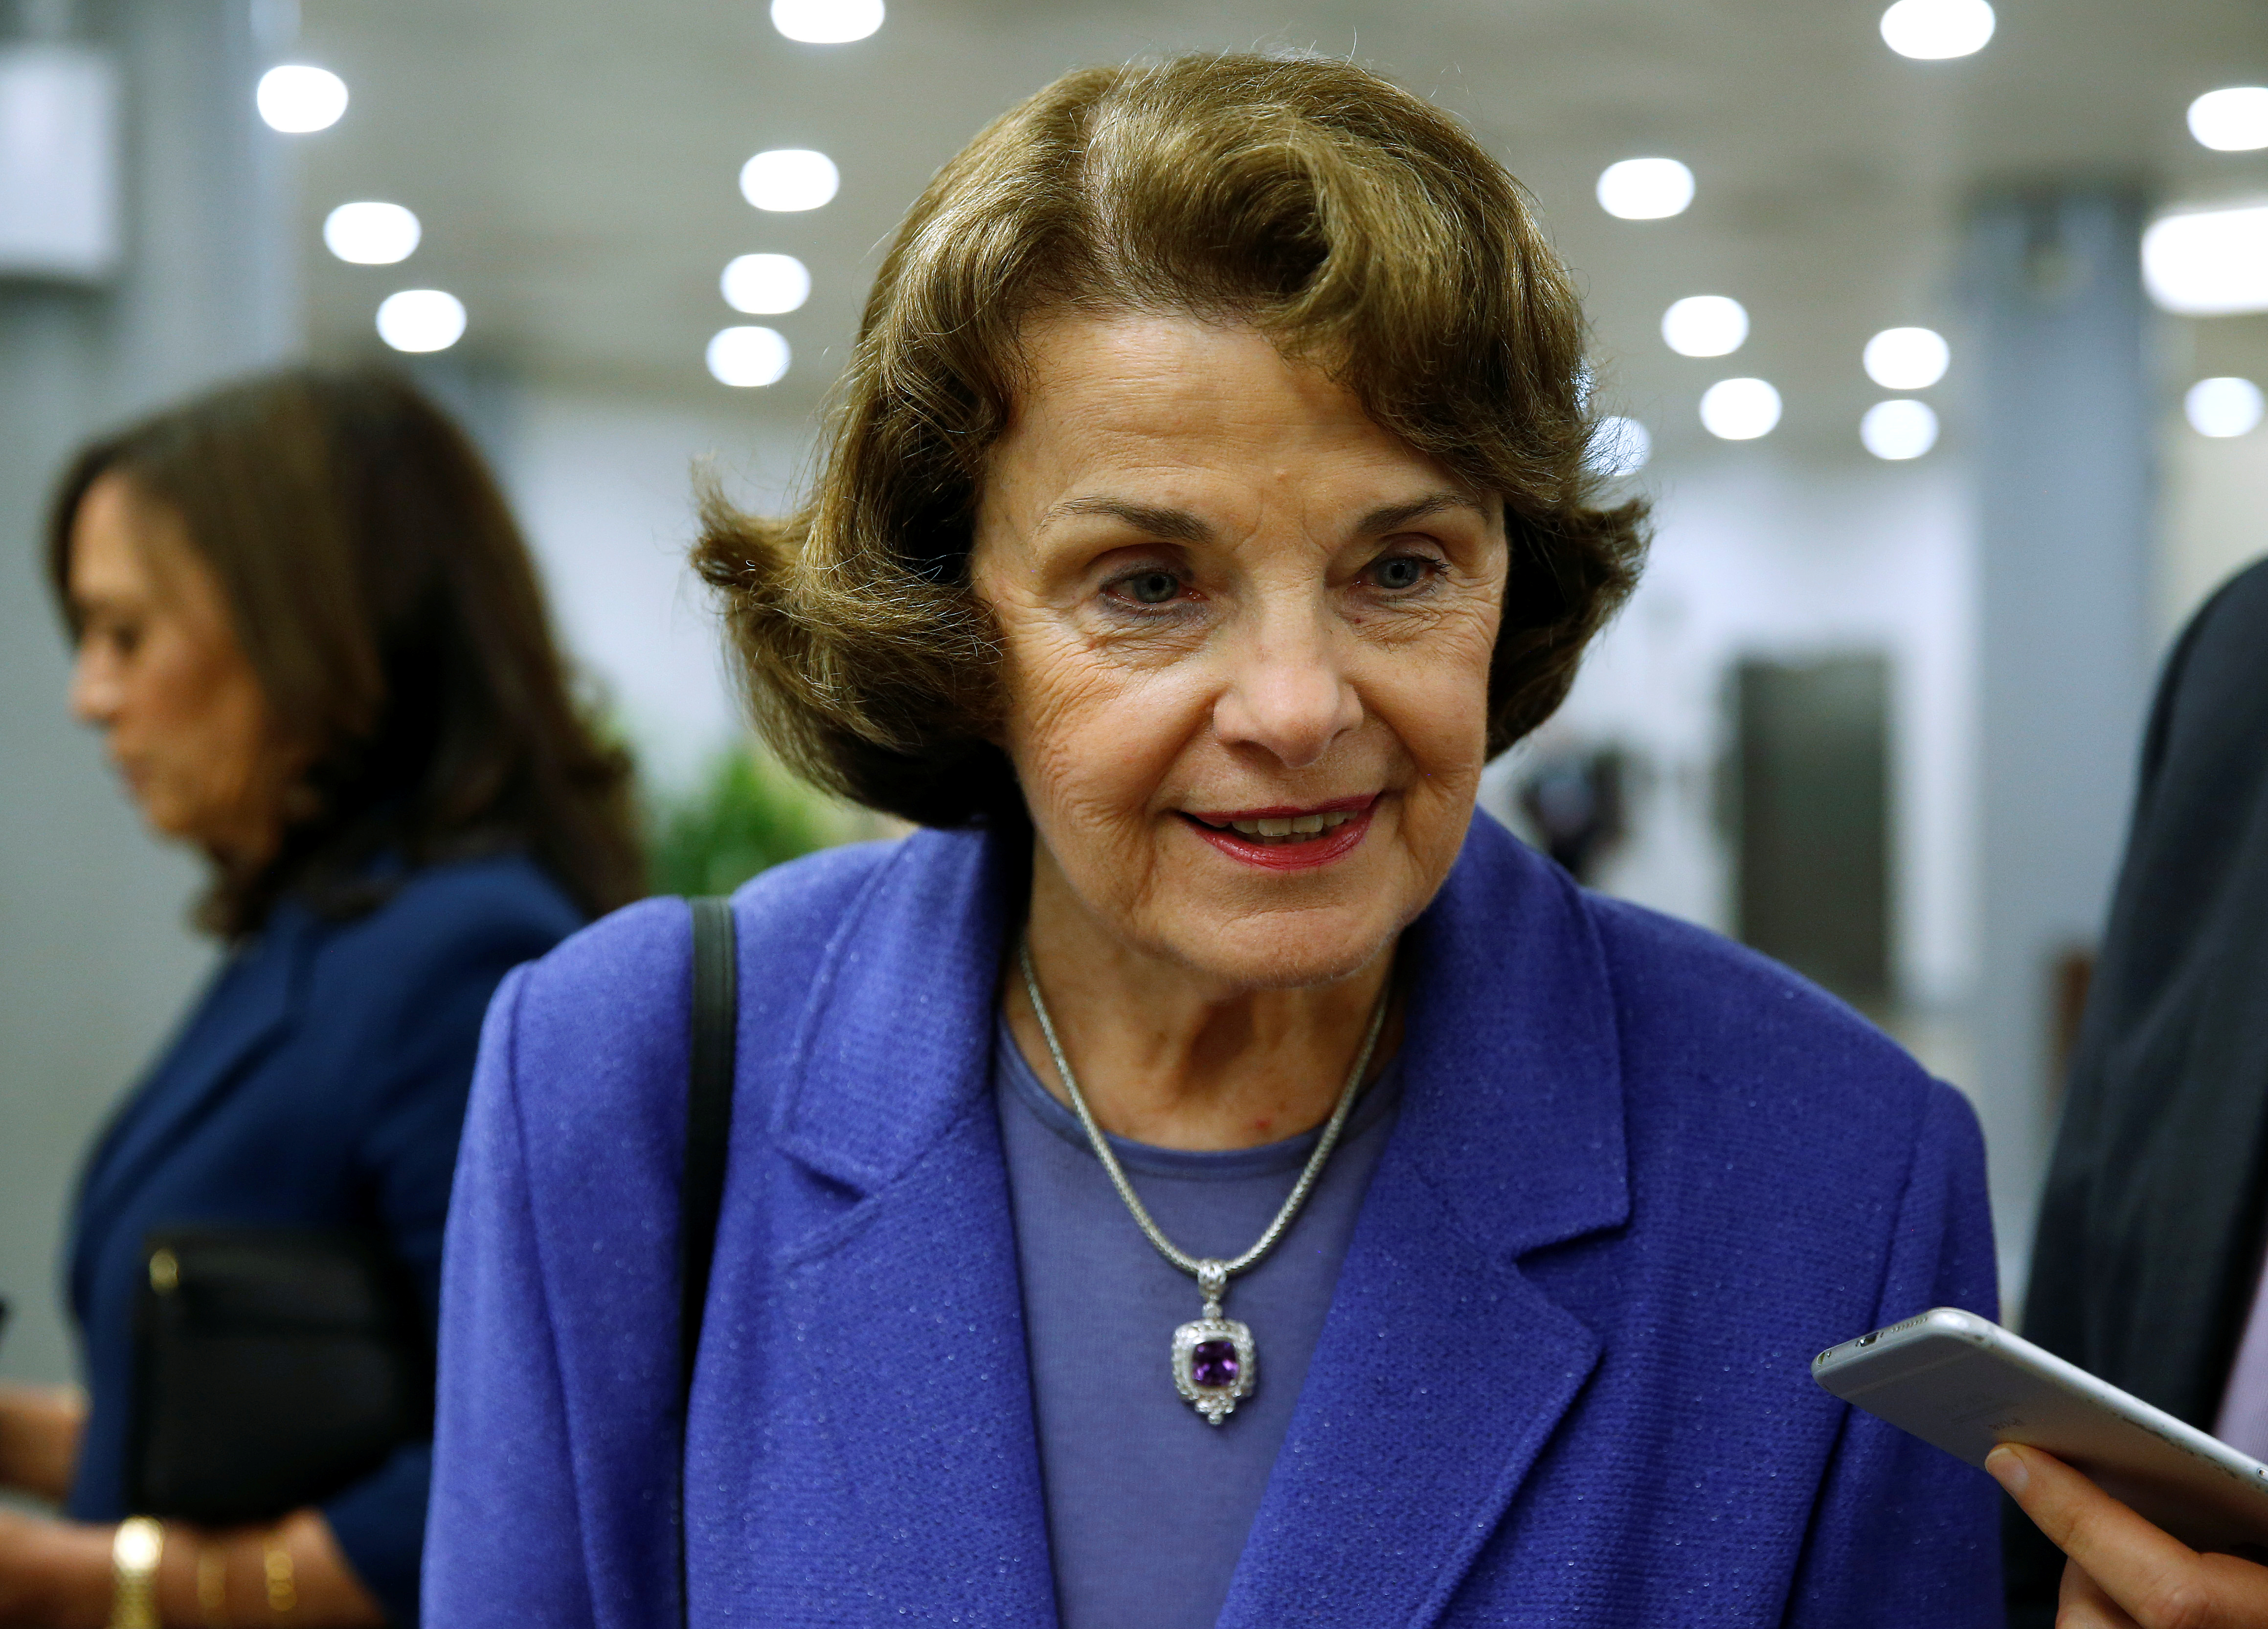 Sen. Dianne Feinstein (D-CA) speaks to reporters after the Senate approved $15.25 billion in aid for areas affected by Hurricane Harvey along with measures that would fund the federal government and raise its borrowing limit on Capitol Hill in Washington, U.S., September 7, 2017. REUTERS/Joshua Roberts